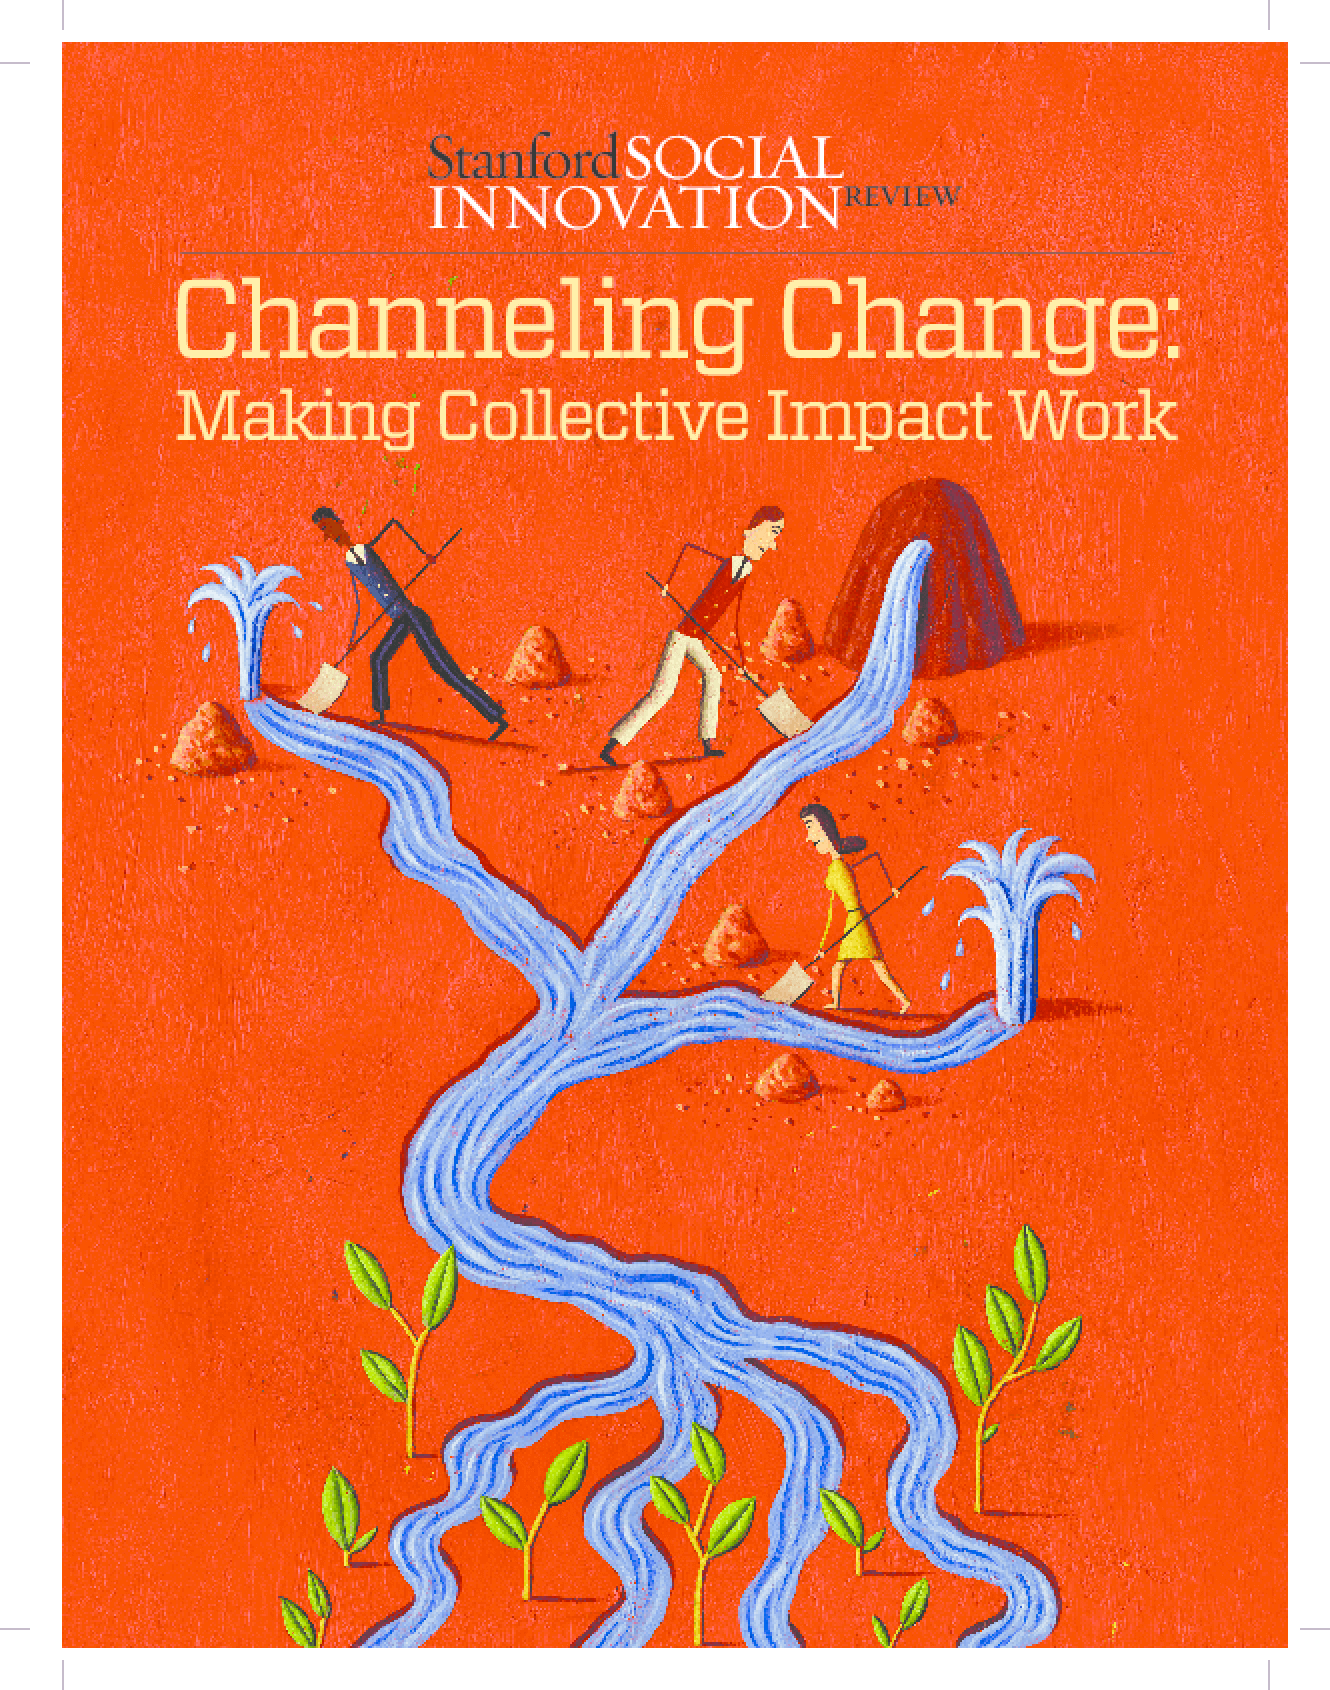 Channeling Change: Making Collective Impact Work